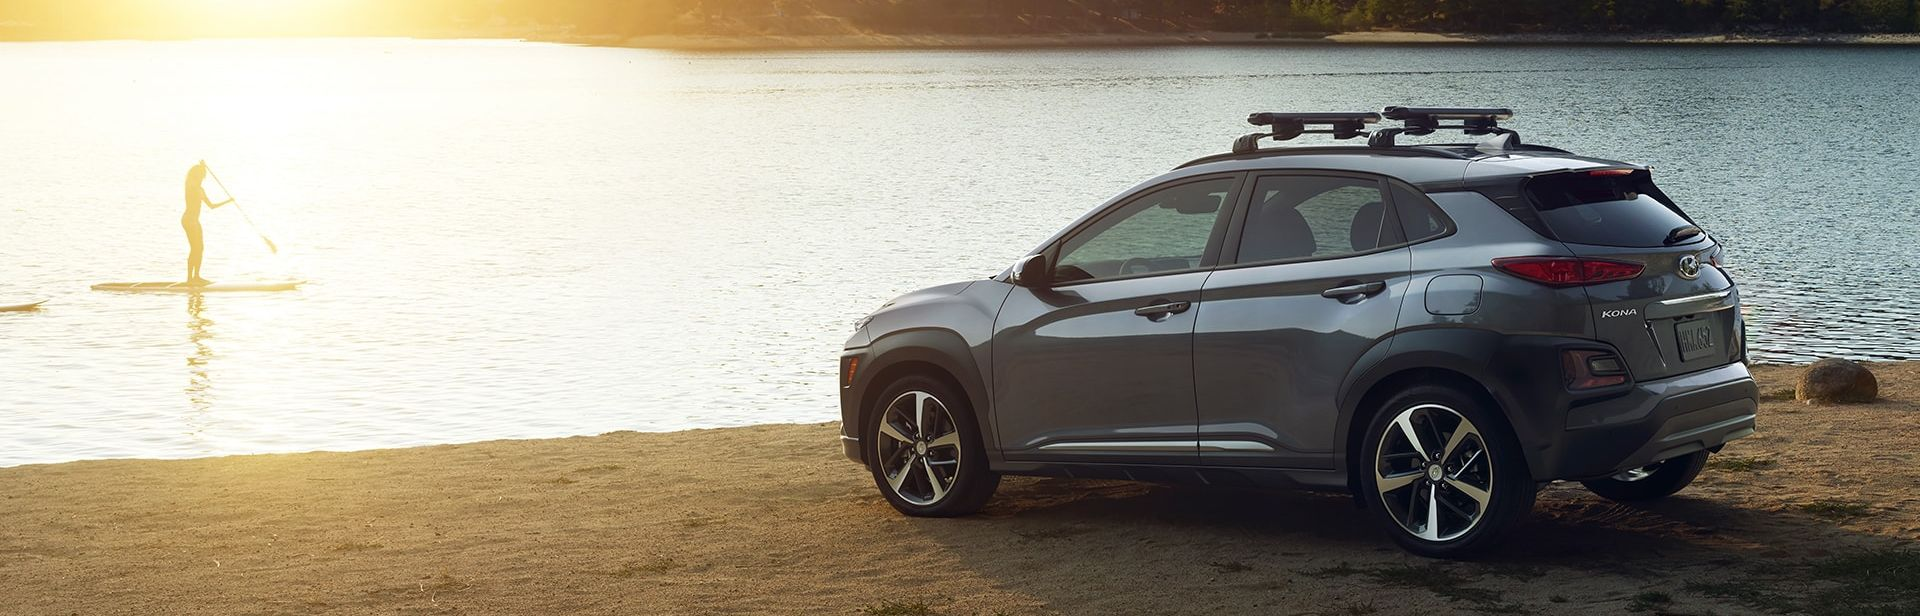 2019 Hyundai Kona Leasing near Richmond, VA